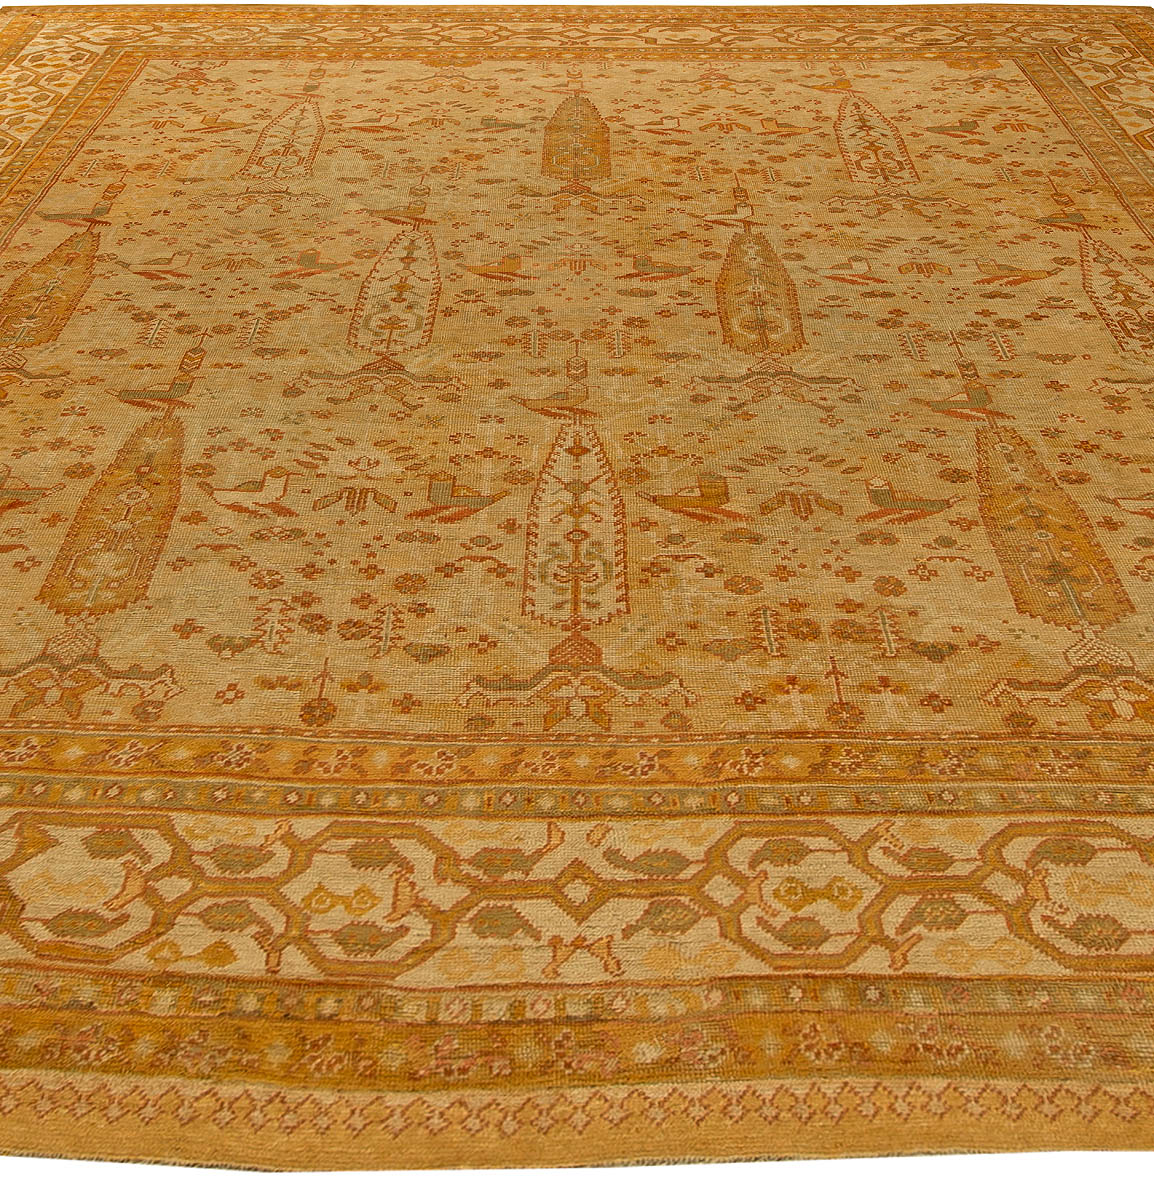 Antique Turkish Oushak Beige Handwoven Wool Rug BB6161